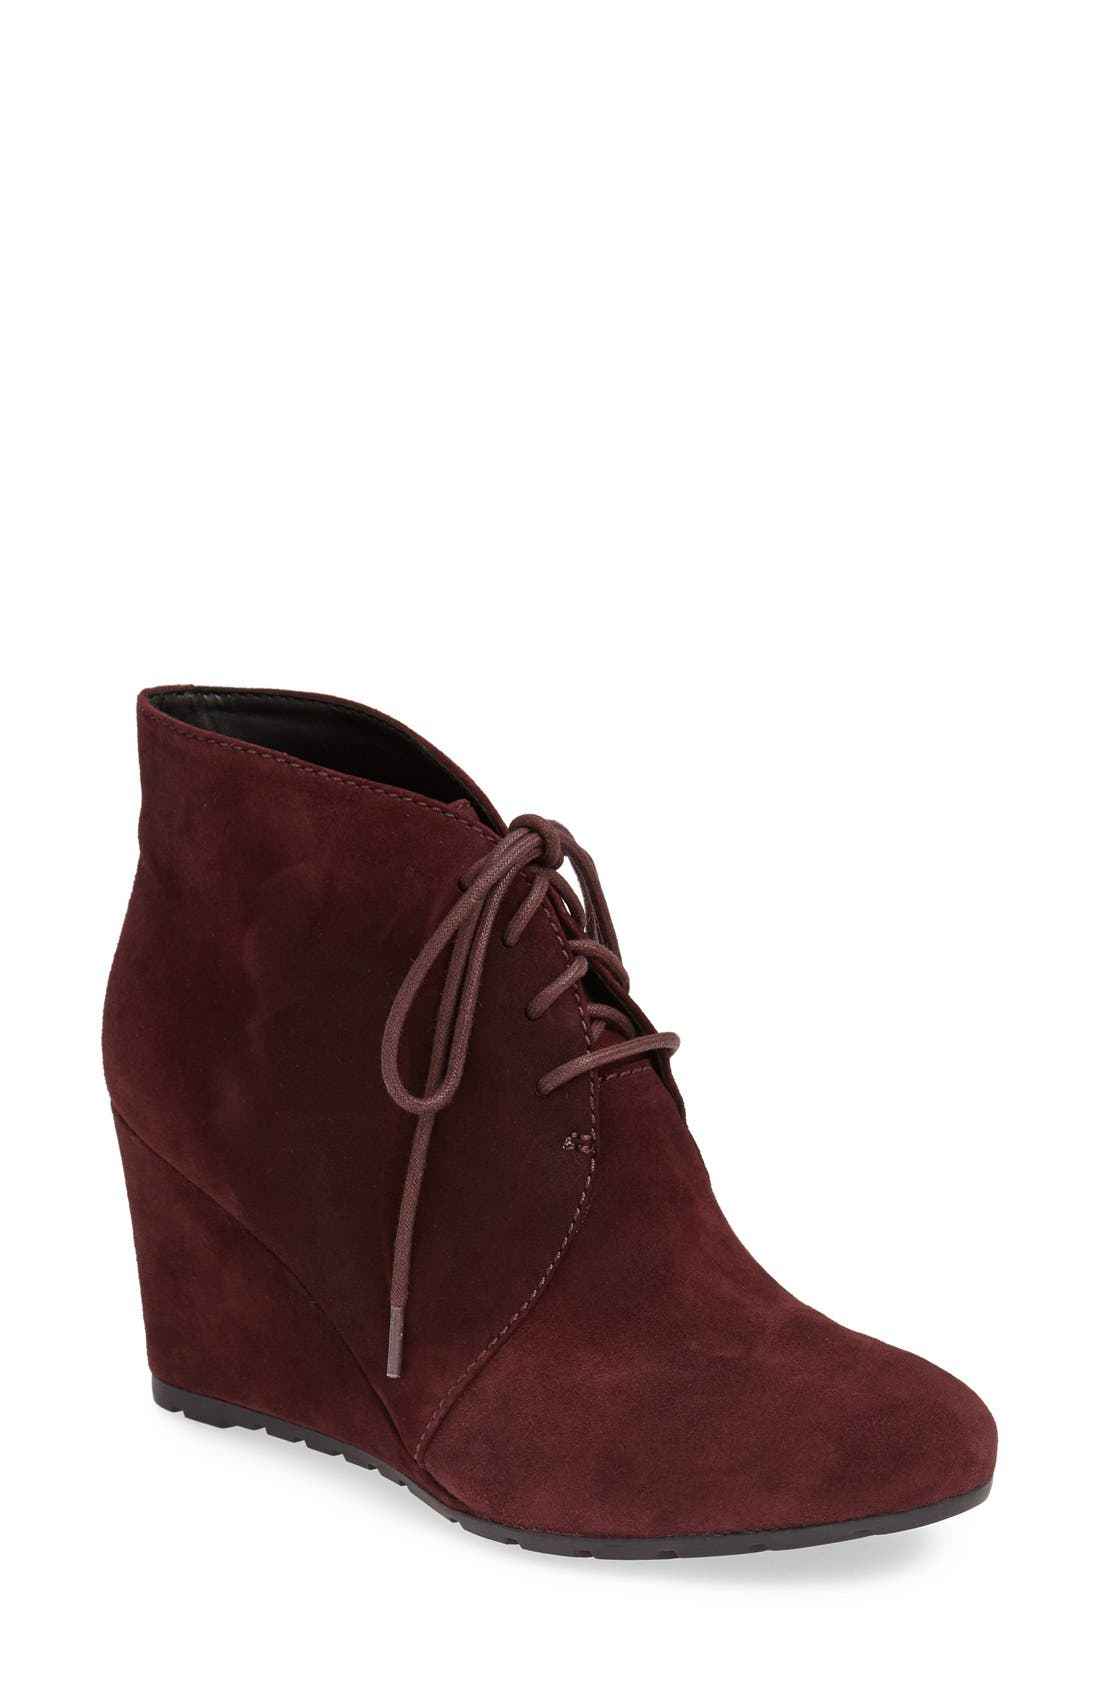 Main Image - Clarks® 'Rosepoint Dew' Suede Boot (Women)